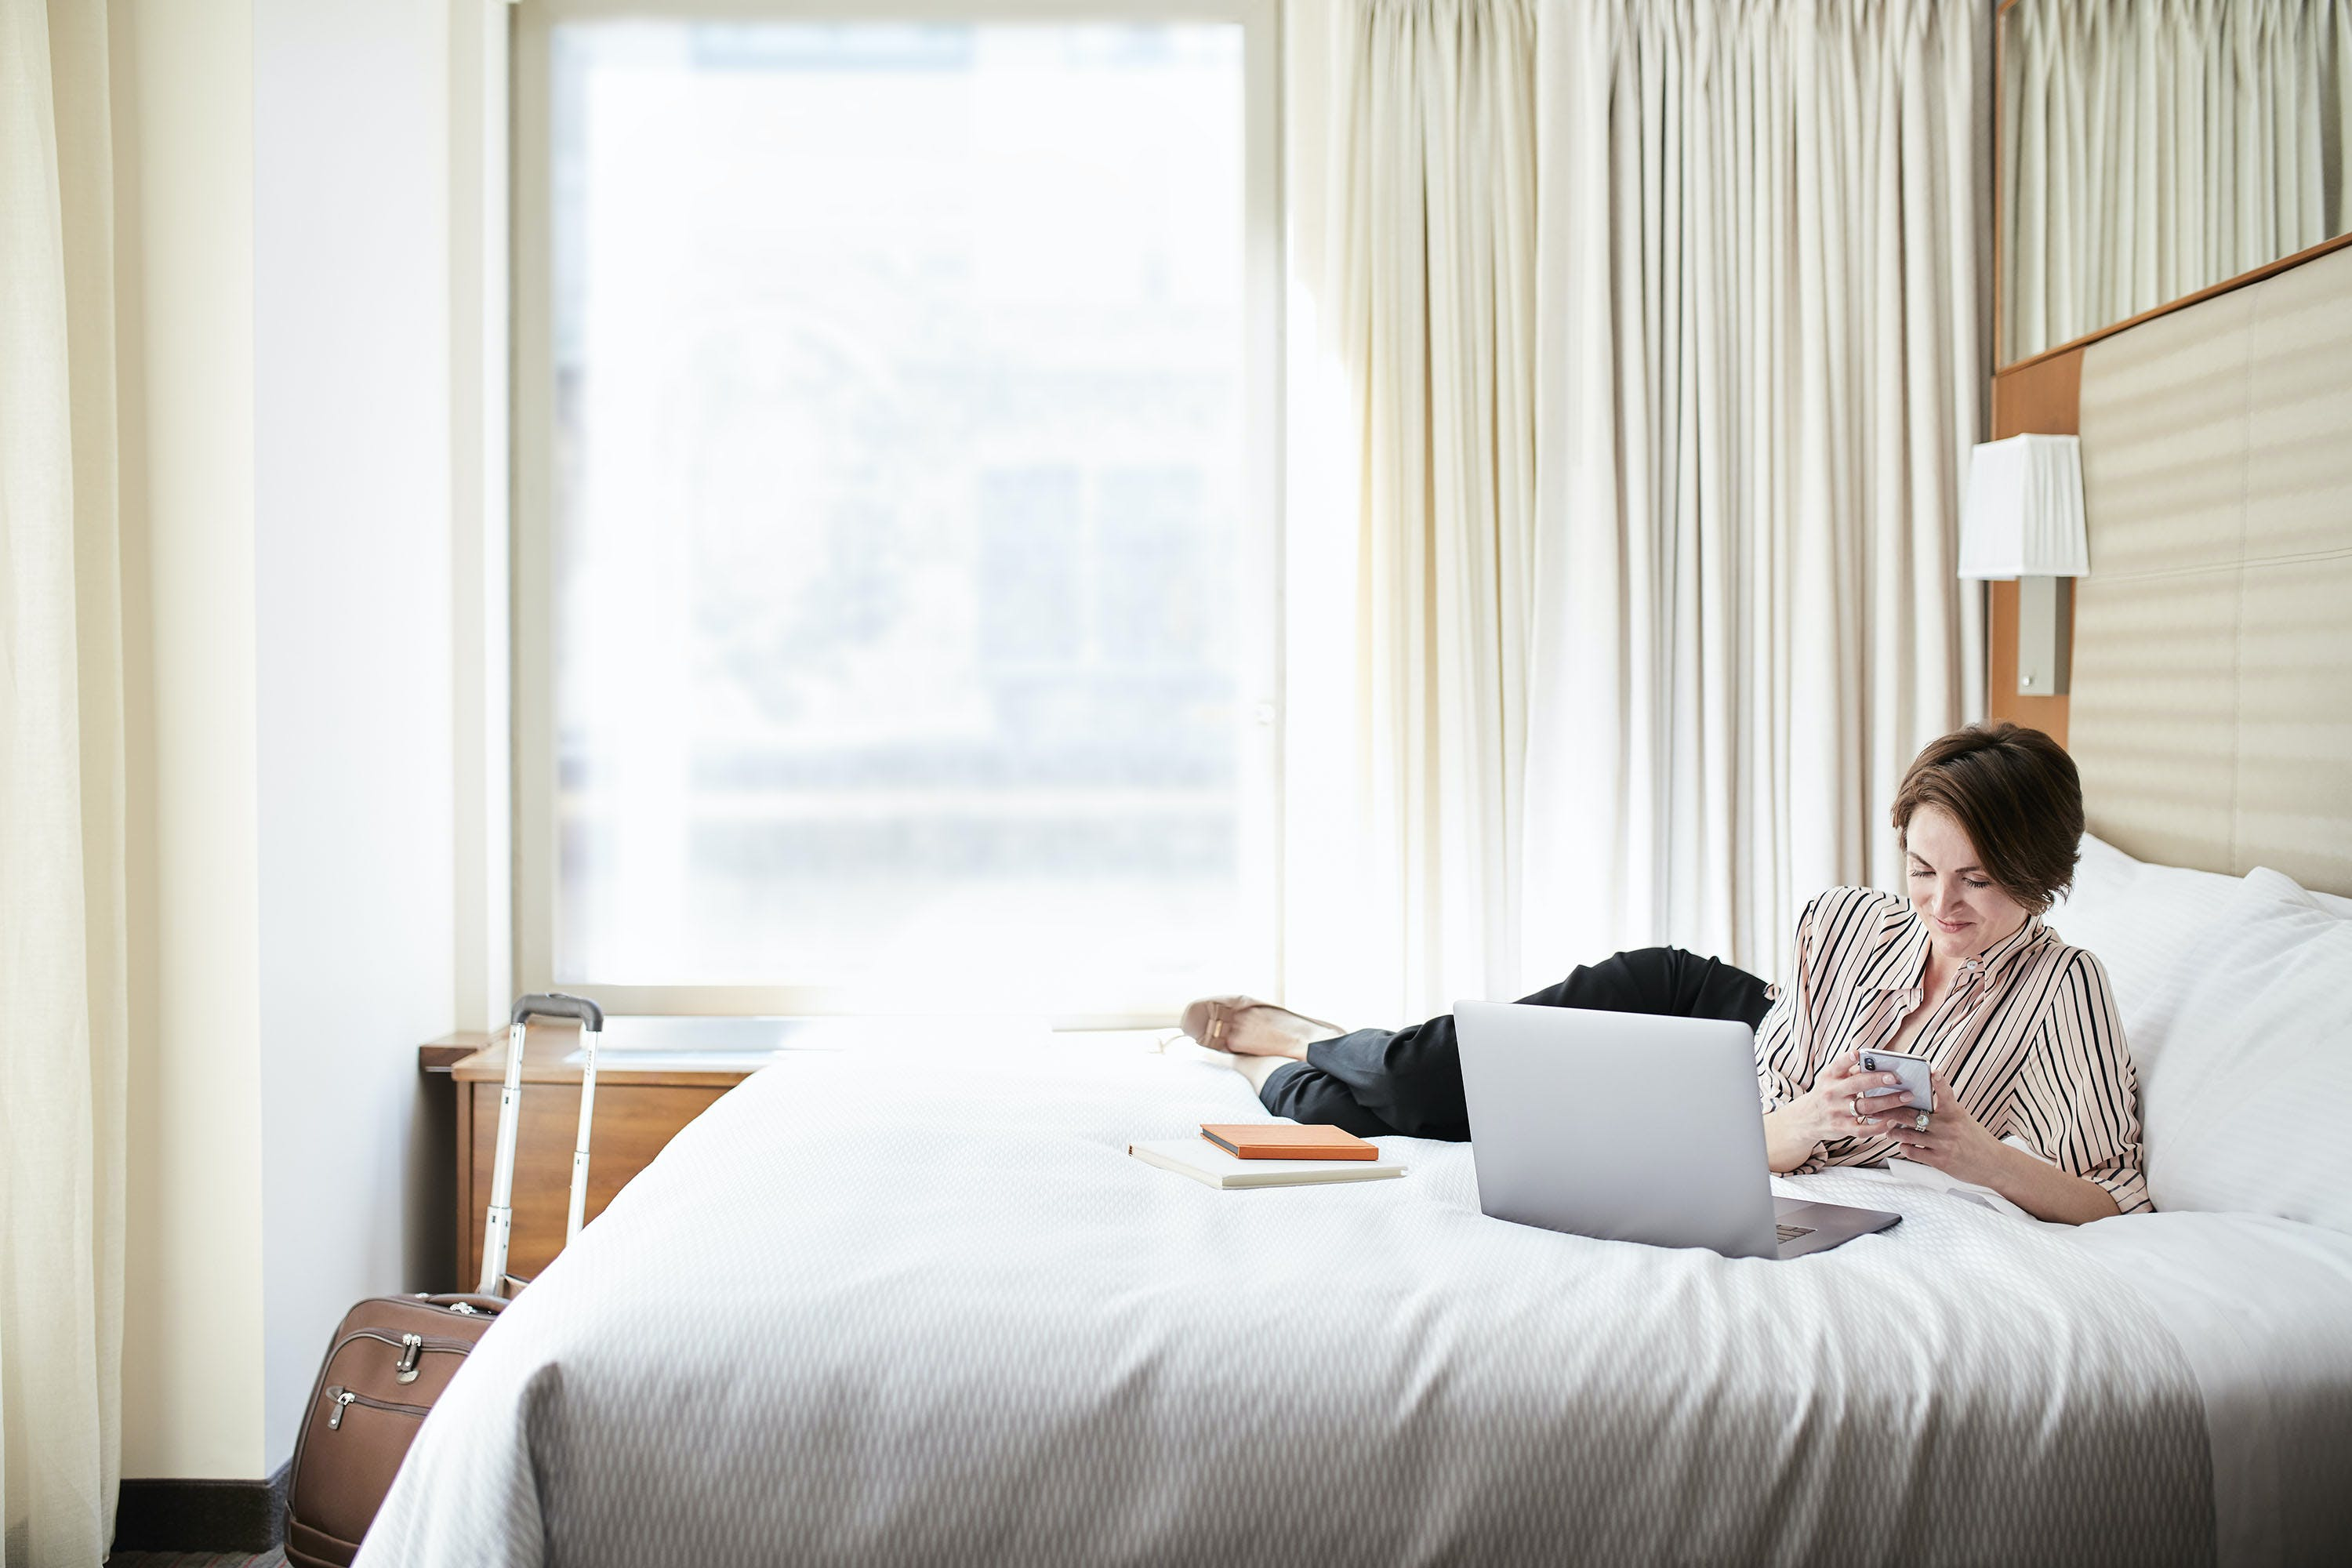 Comfy beds, for sleeping or working, at Club Quarters Hotel, Grand Central